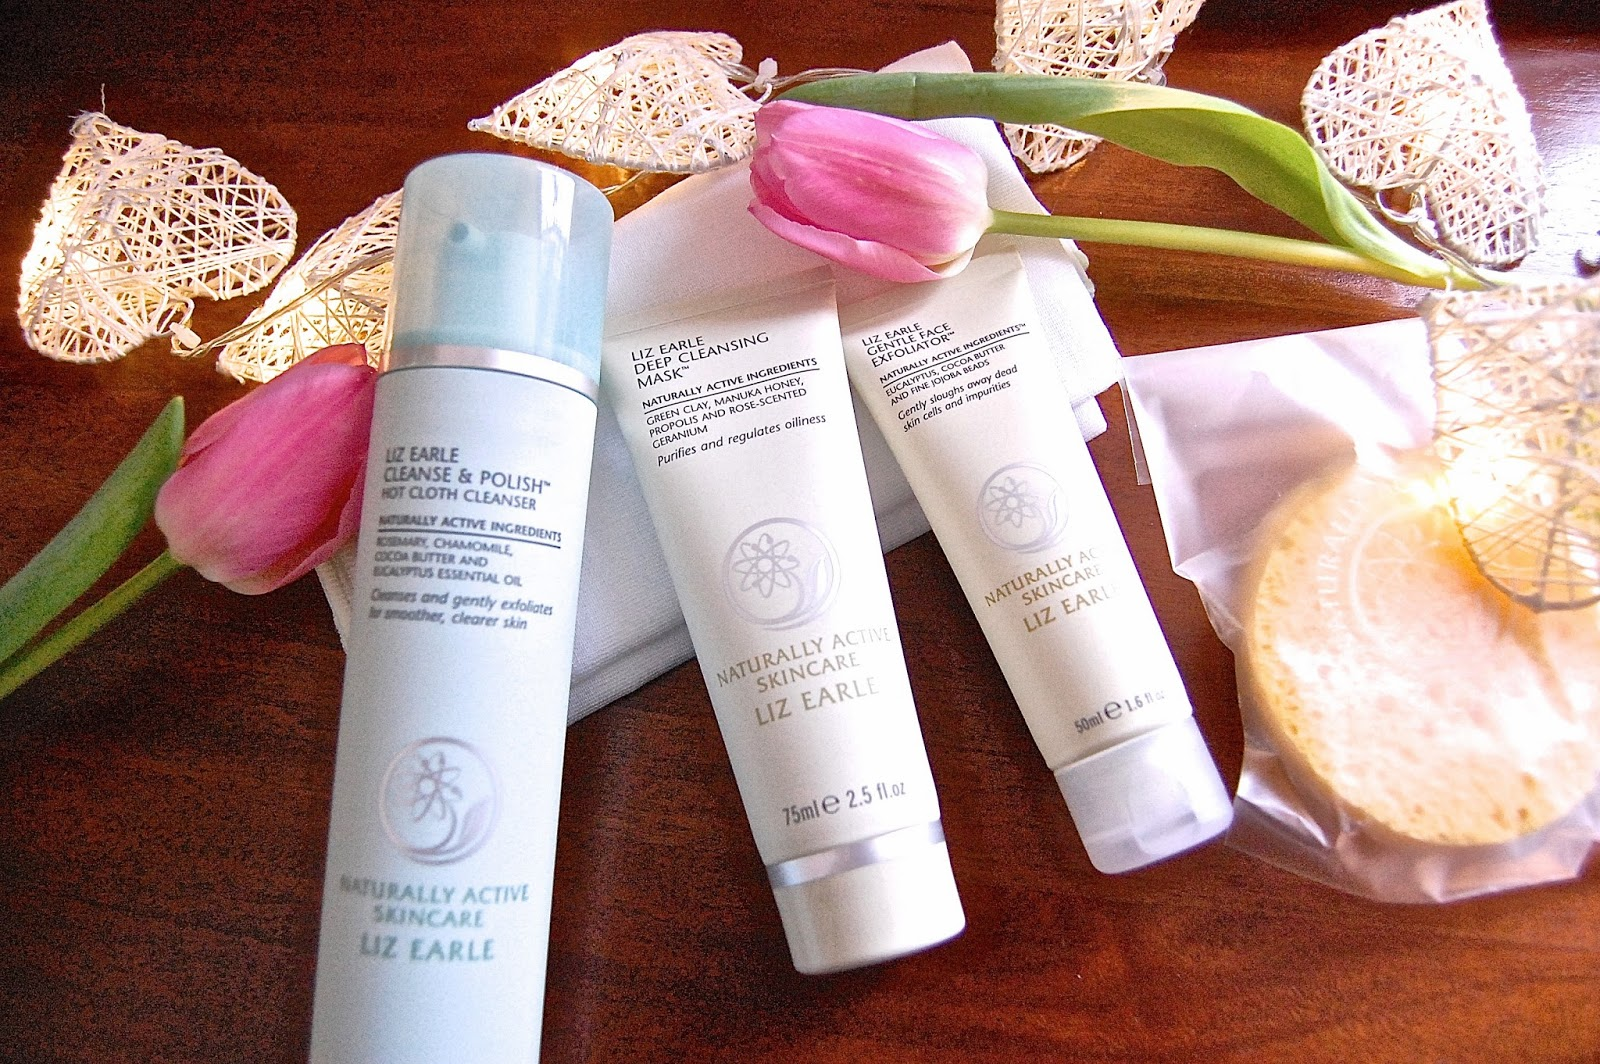 liz earle, cleanse & polish, skin care, skincare, boots, qvc, skin, beauty, exfoliator, mask, lush cosmetics,